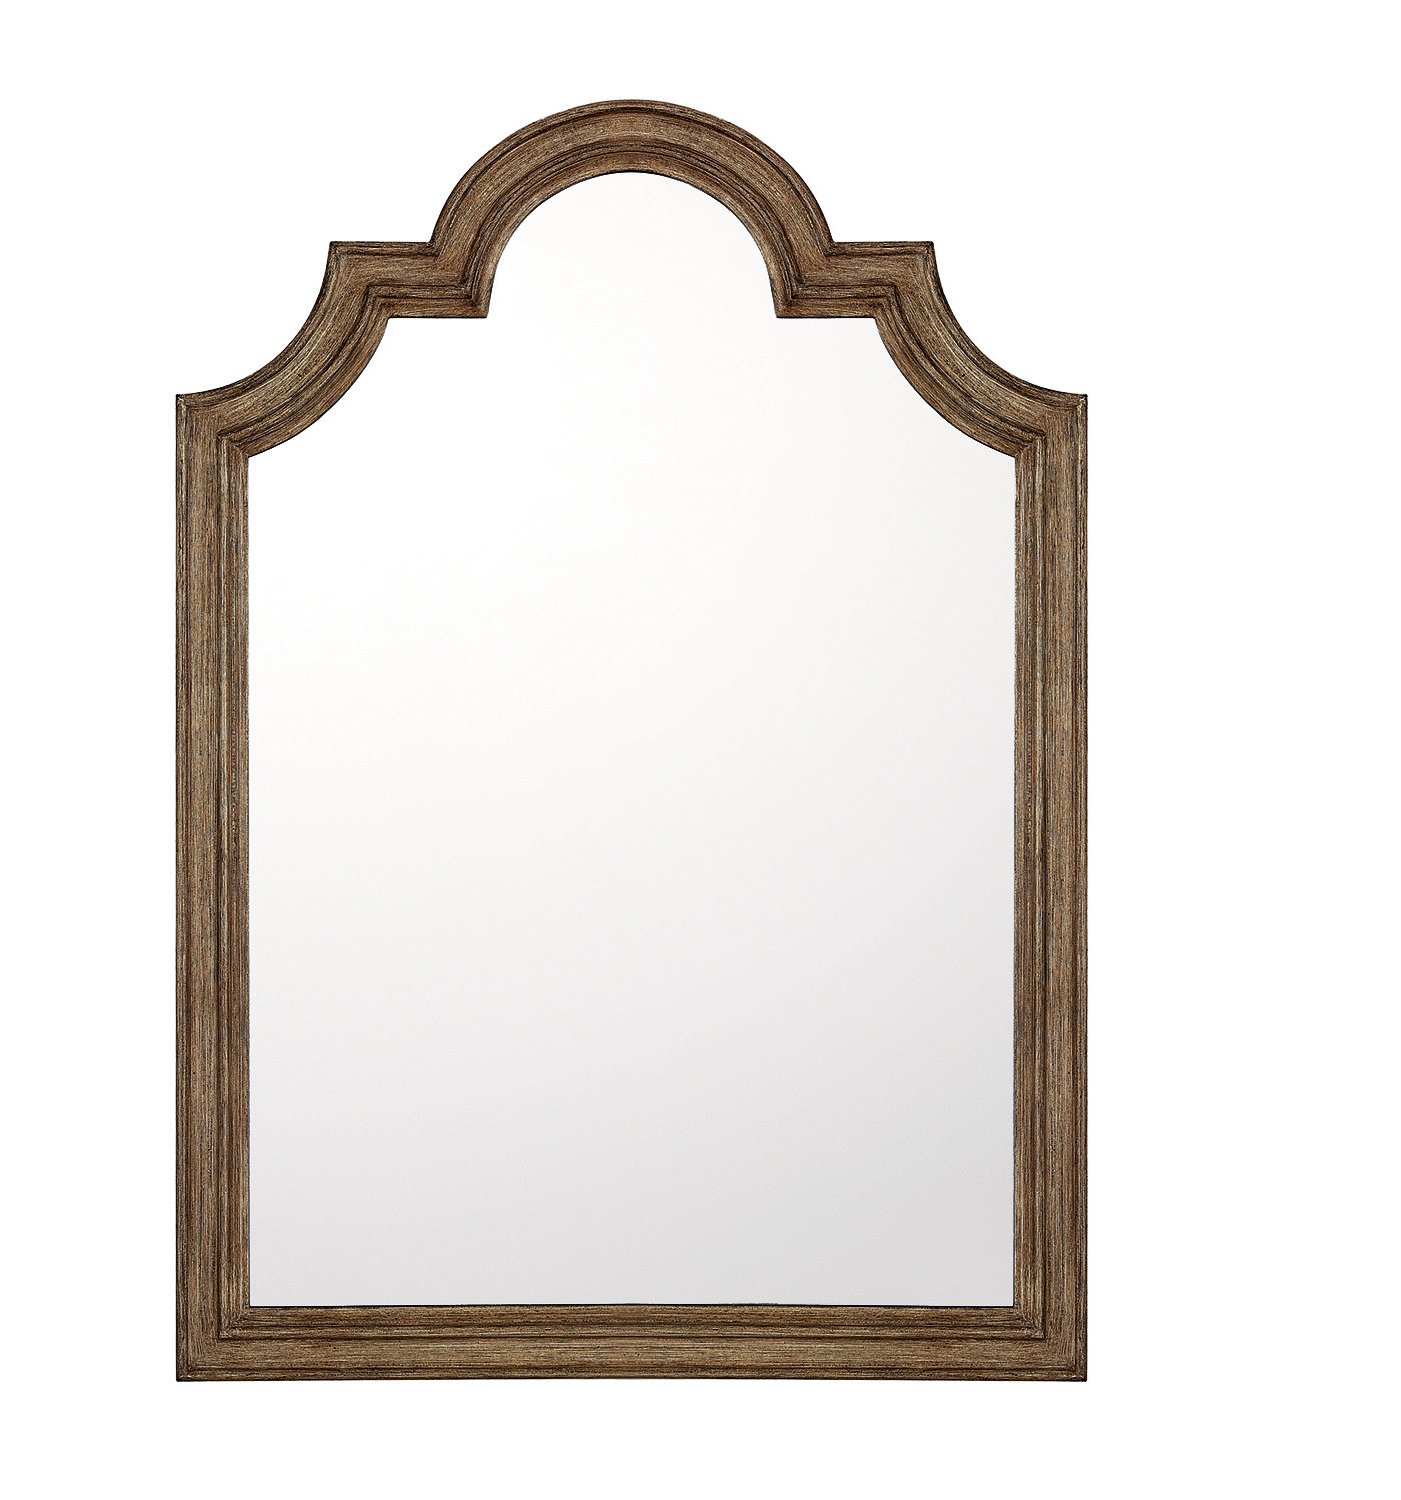 Astrid Modern & Contemporary Accent Mirrors Inside Popular Decorative Traditional Accent Mirror (View 17 of 20)